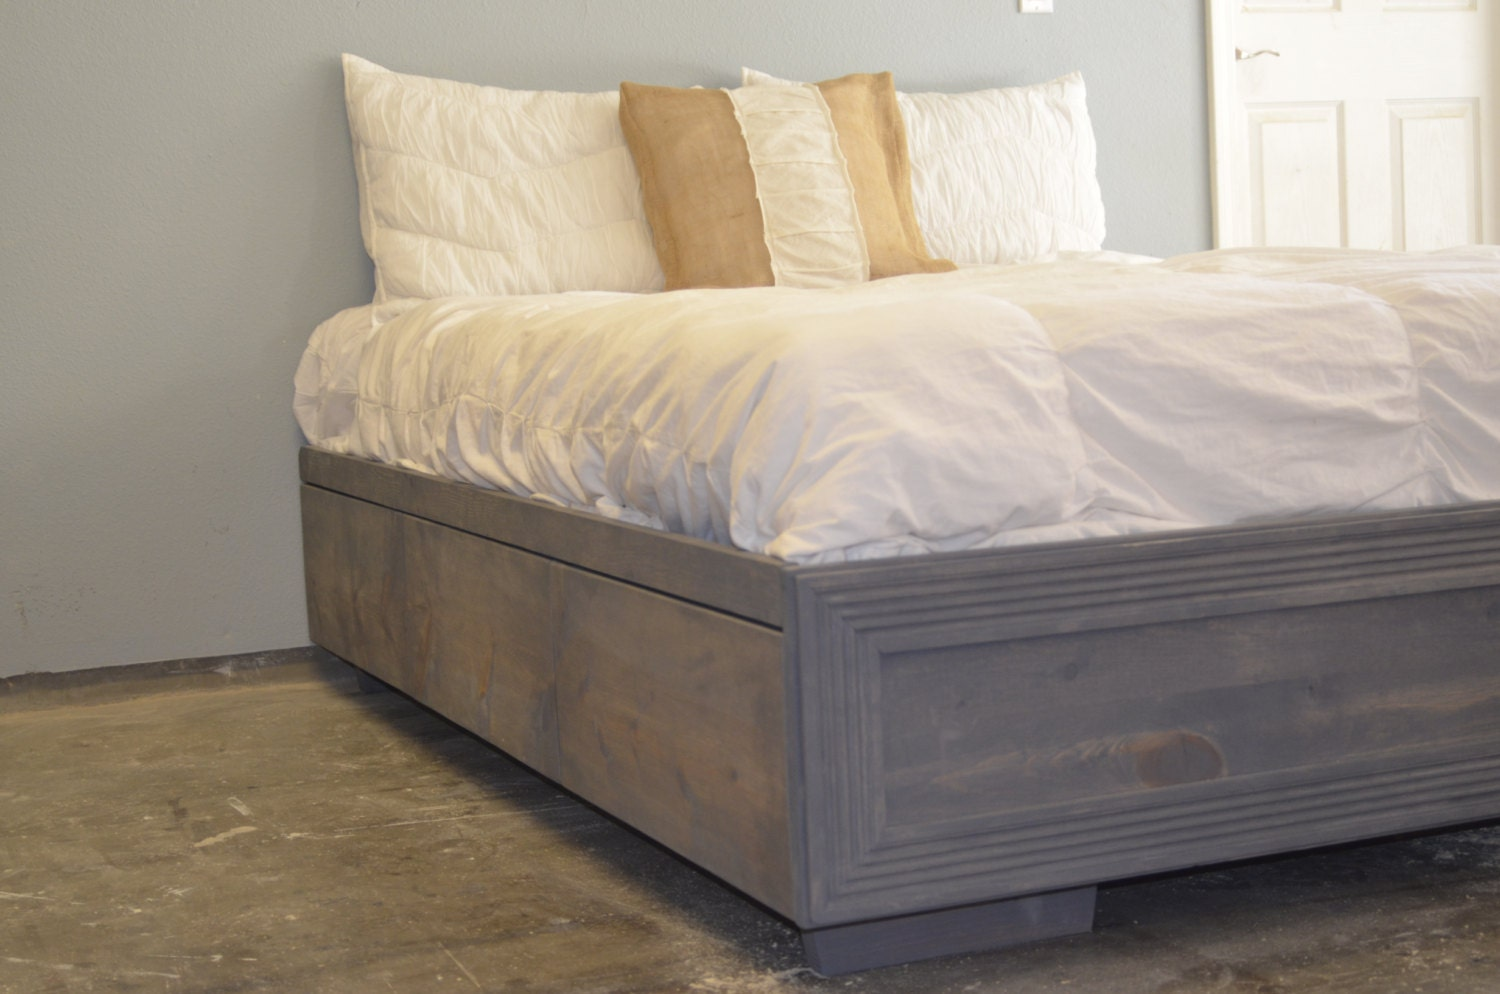 How to raise a bed frame off the floor easy diy platform for How to raise your bed frame